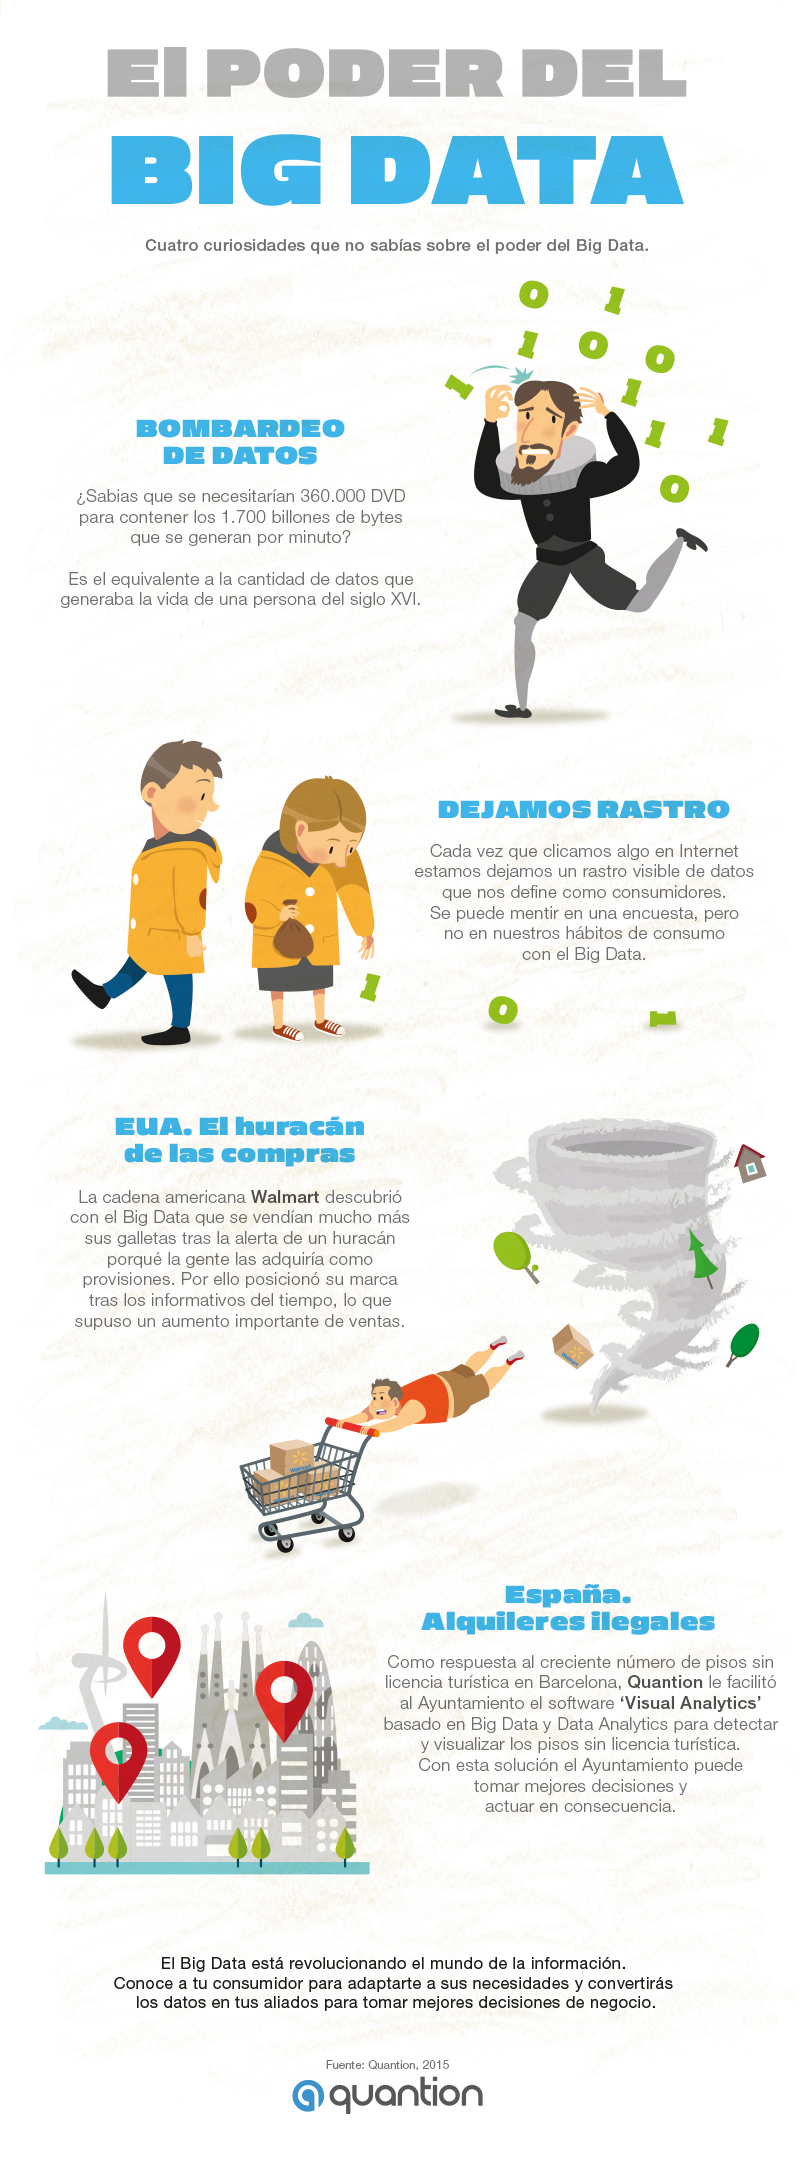 El poder del Big Data